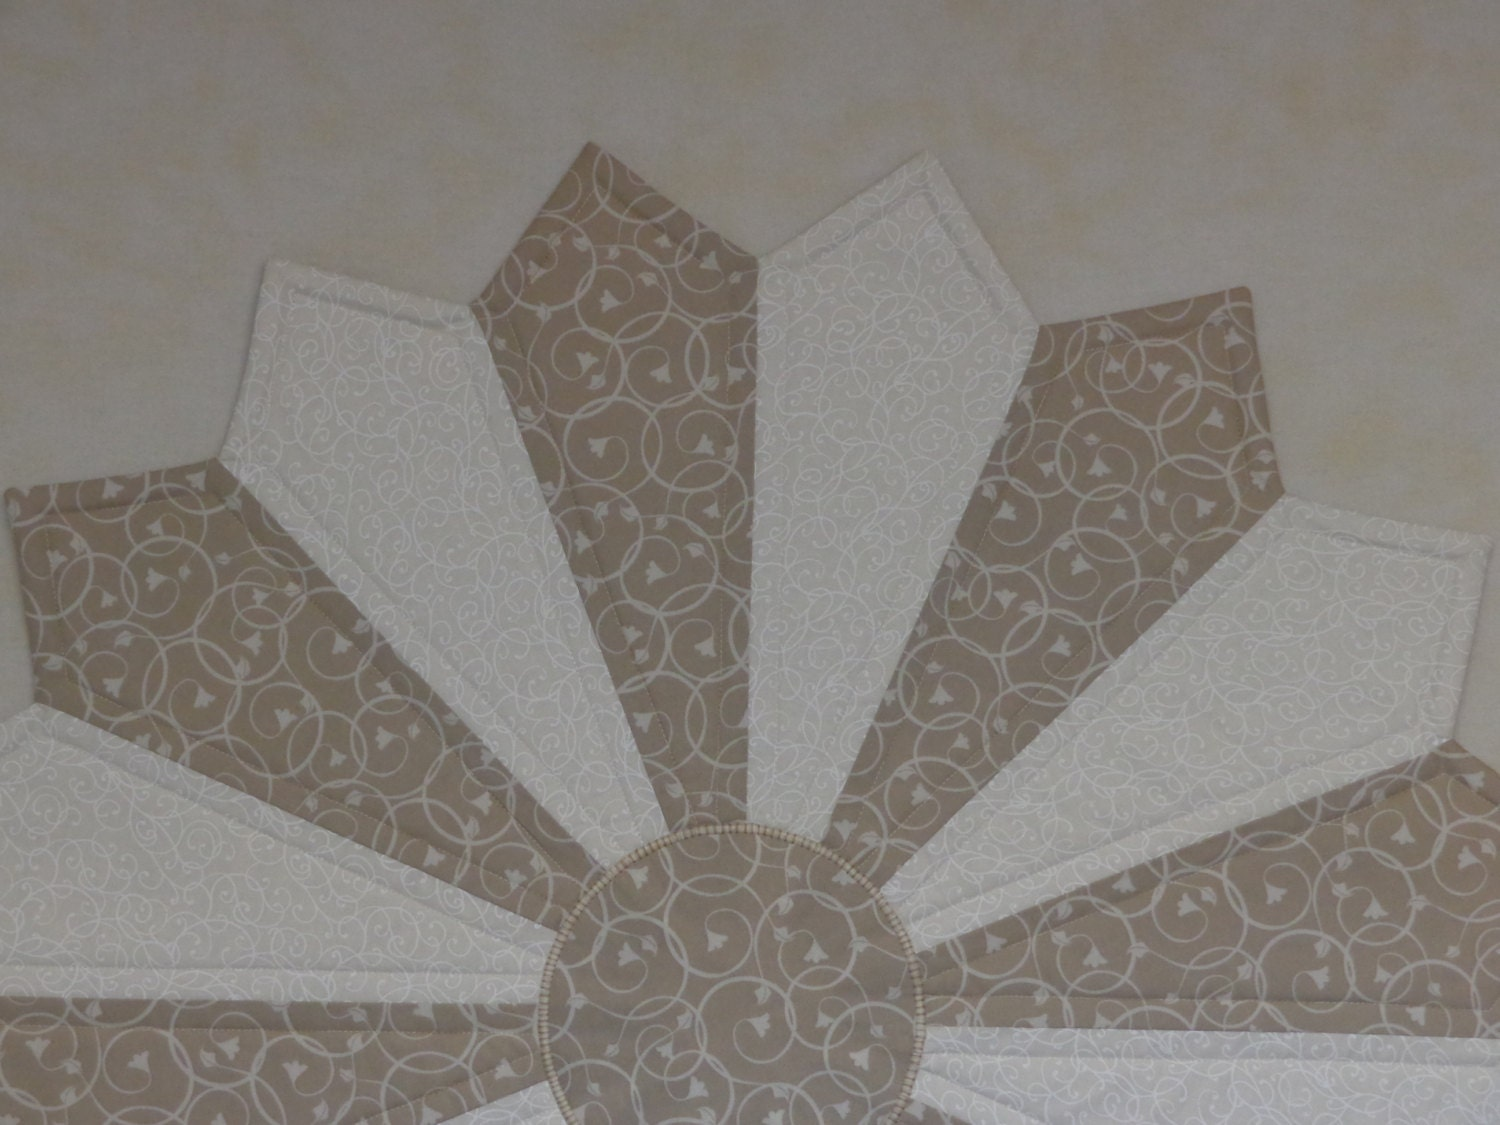 Wedding centerpiece quilted centerpiece round table topper for Round table runner quilt pattern